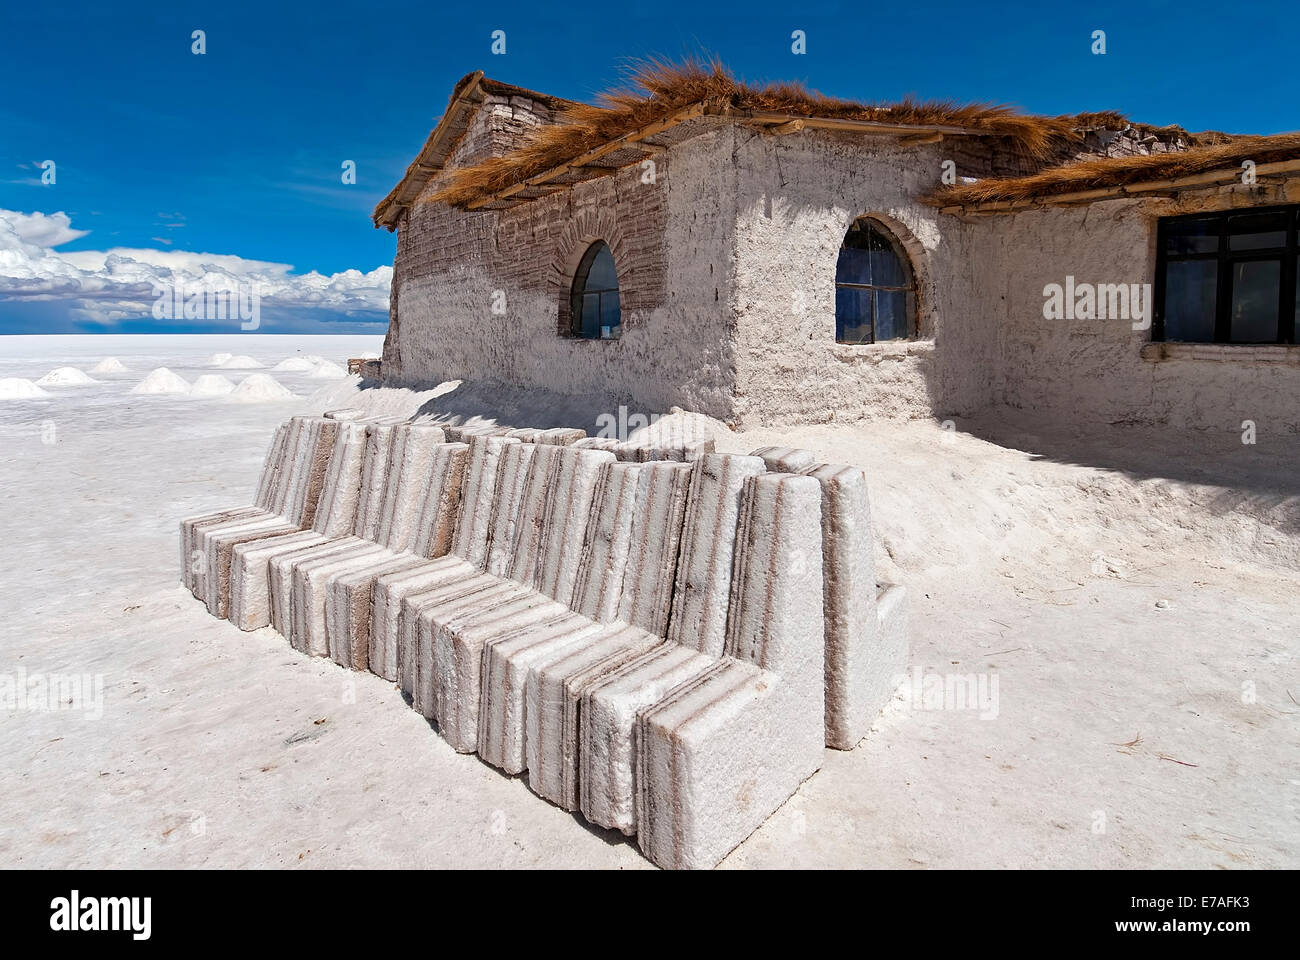 Playa blanca salt hotel made from salt blocks salar de for Salar de uyuni hotel made of salt